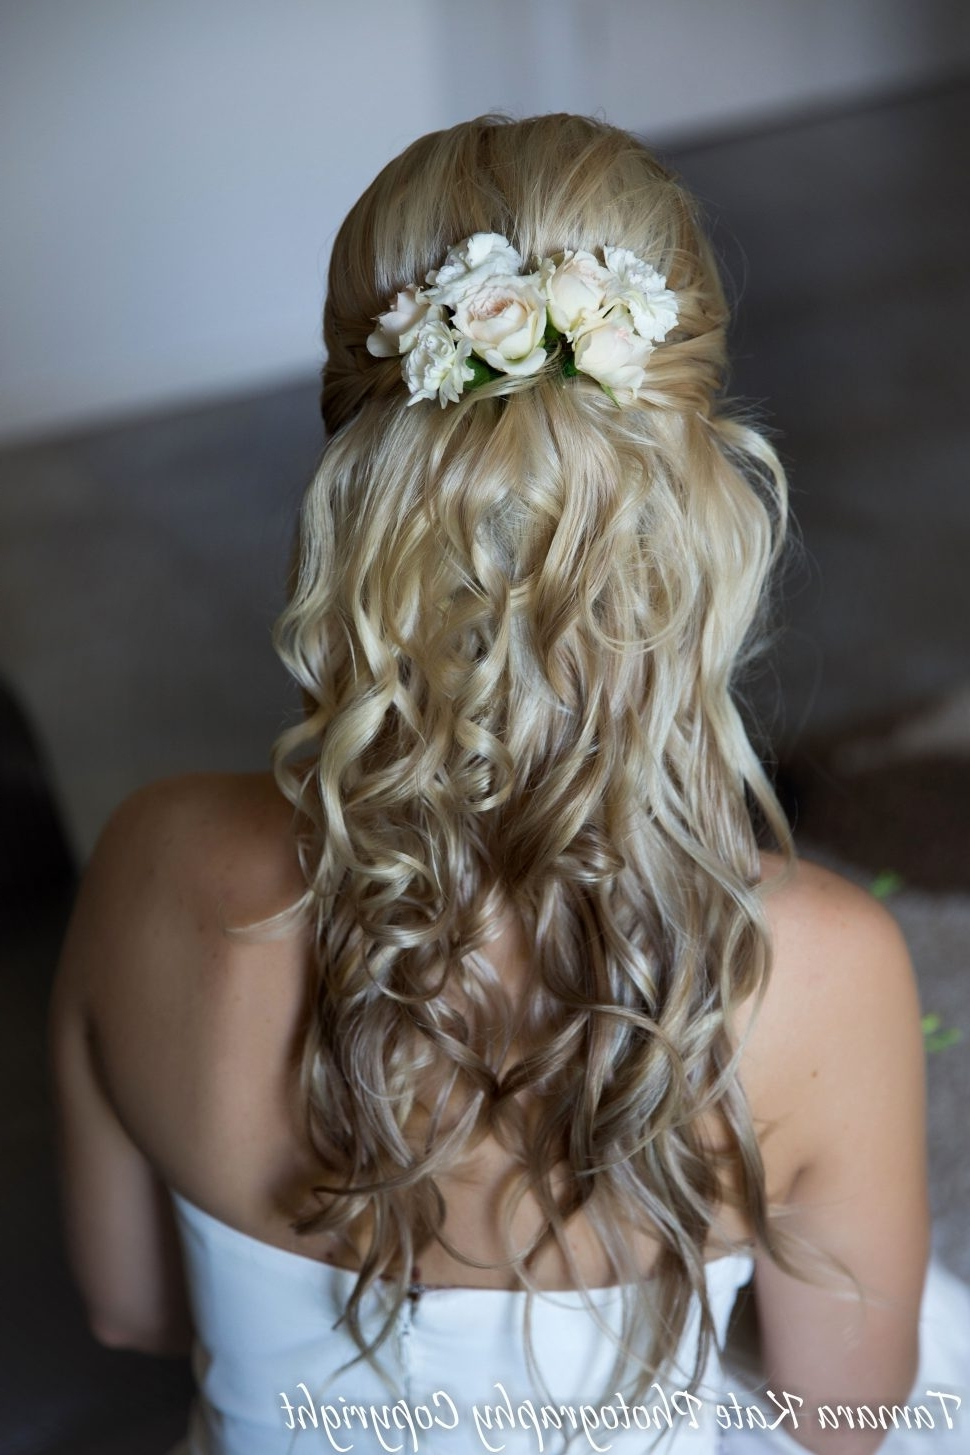 Wedding : Overstockh Wedding Hairstyles Image Concept For Throughout Most Current Beach Wedding Hairstyles For Bridesmaids (View 10 of 15)